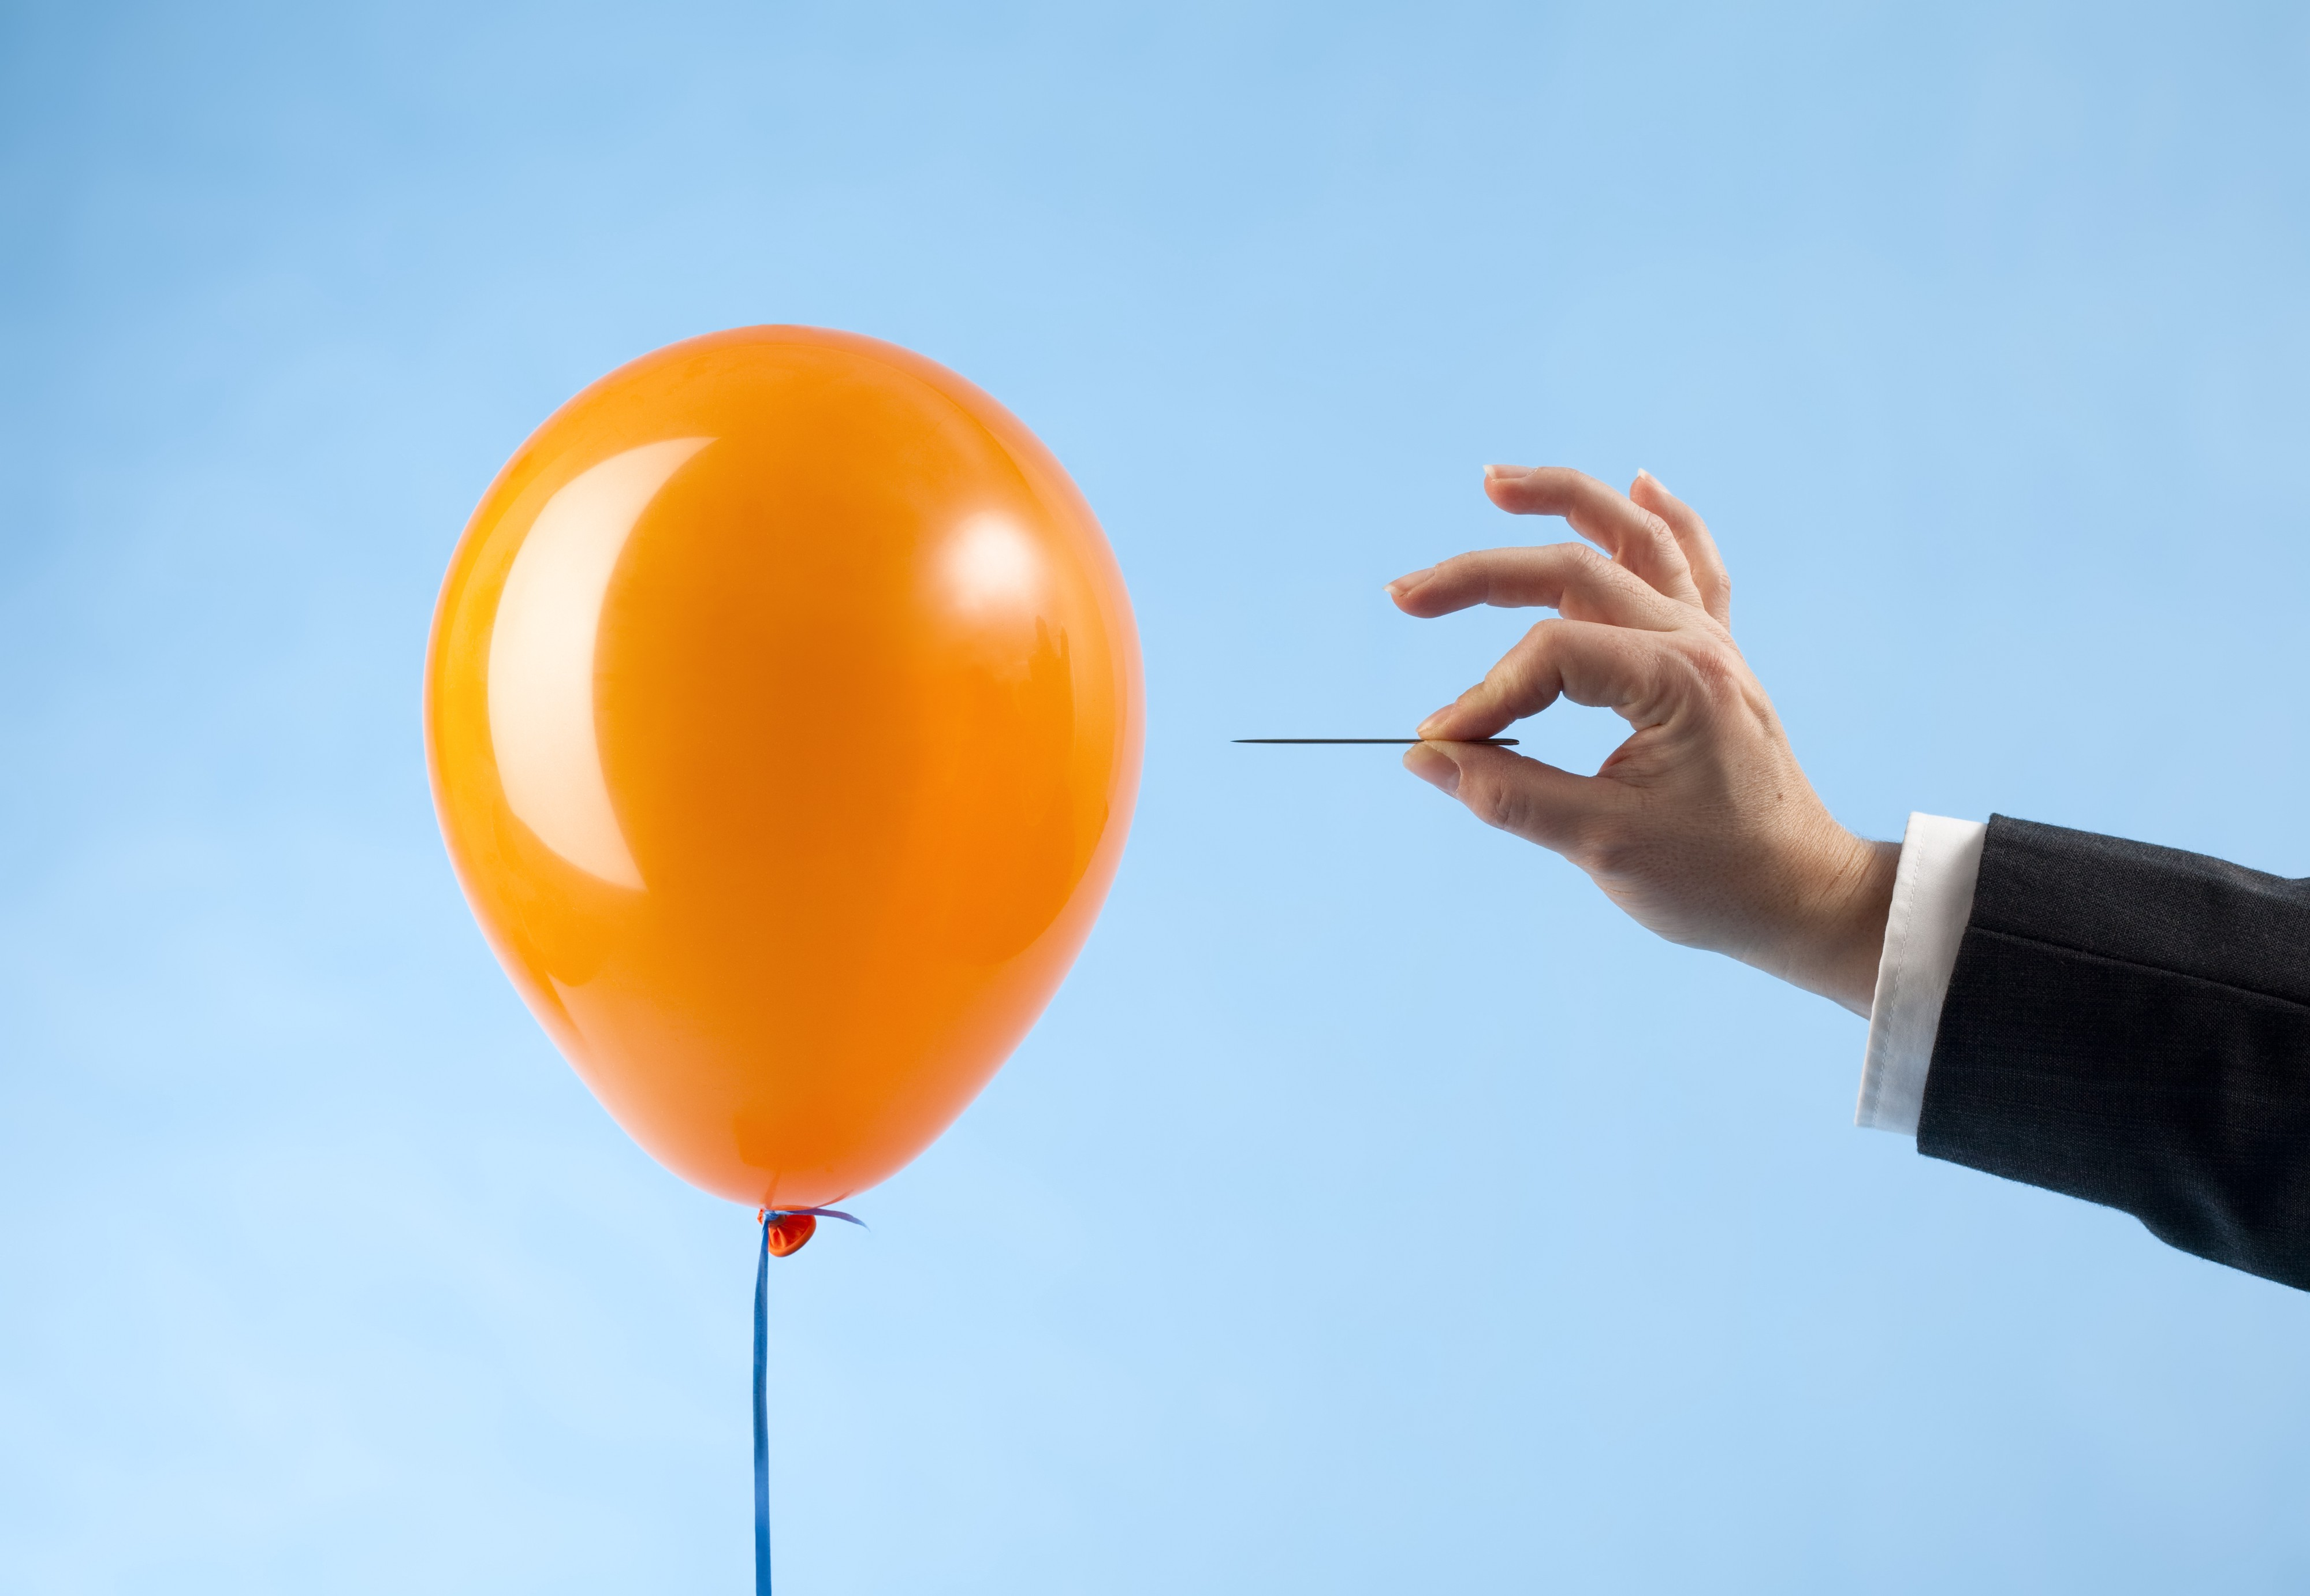 A balloon about to be popped with a needle.